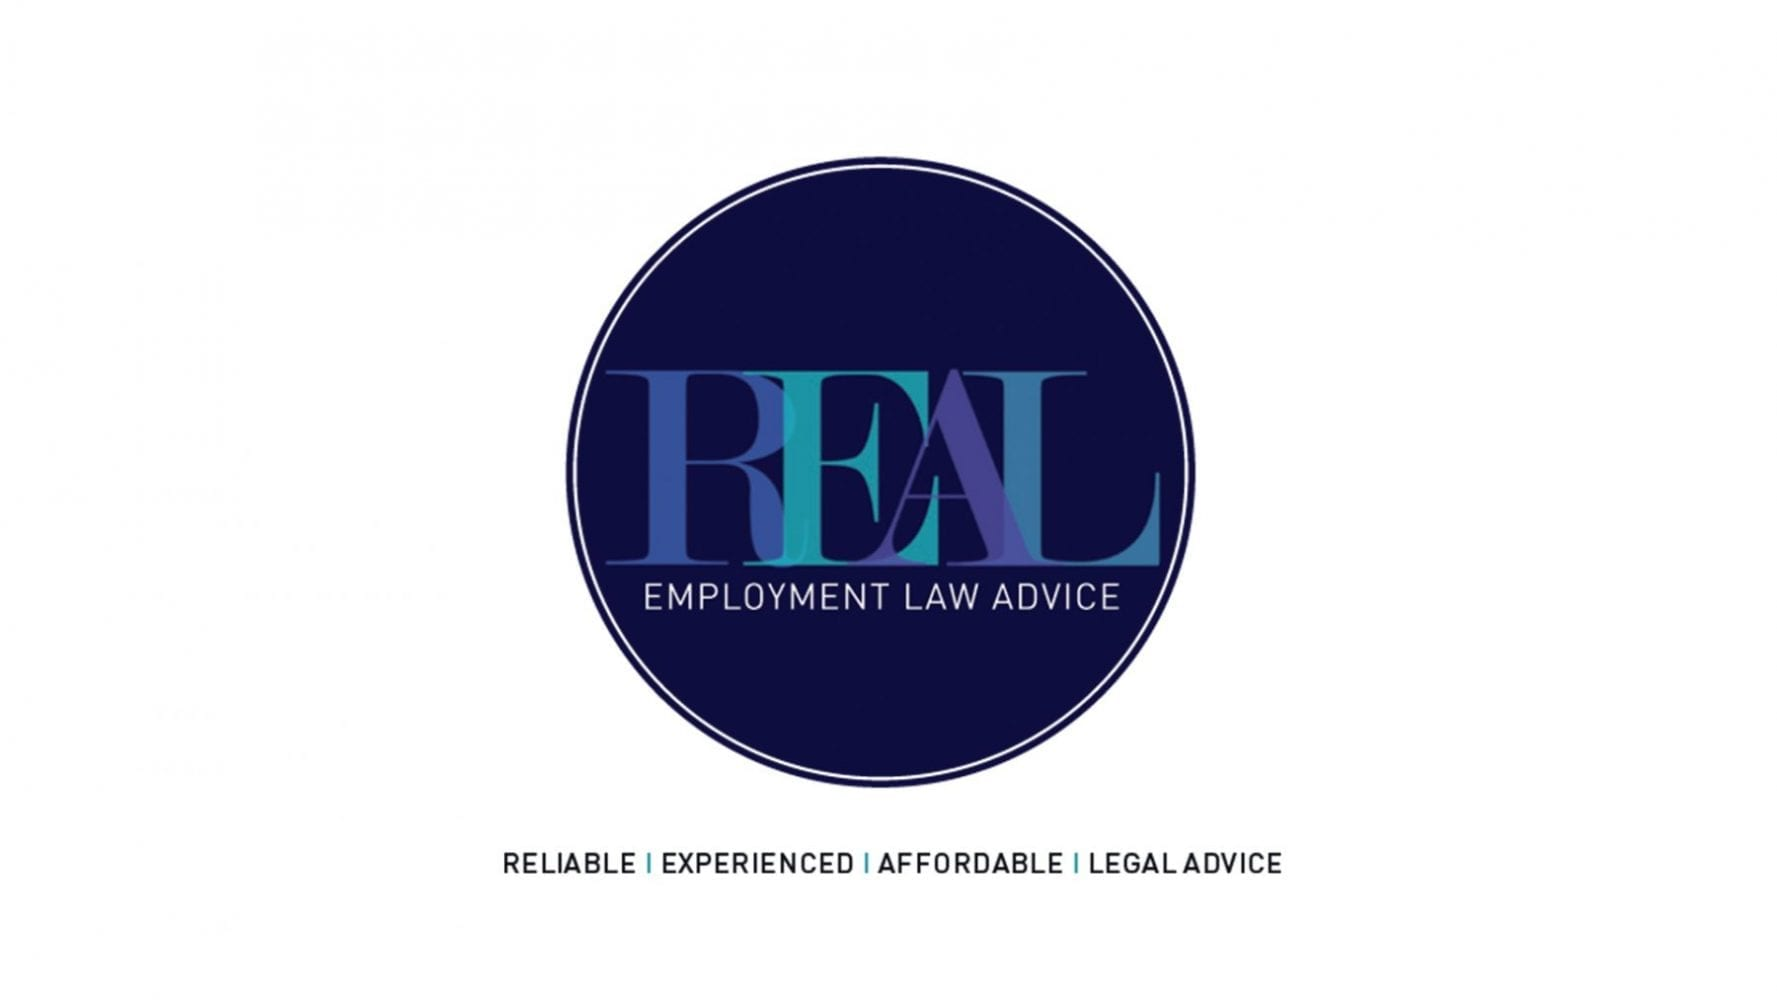 Real Employment Law Advice - Your Employment Law & HR Specialists